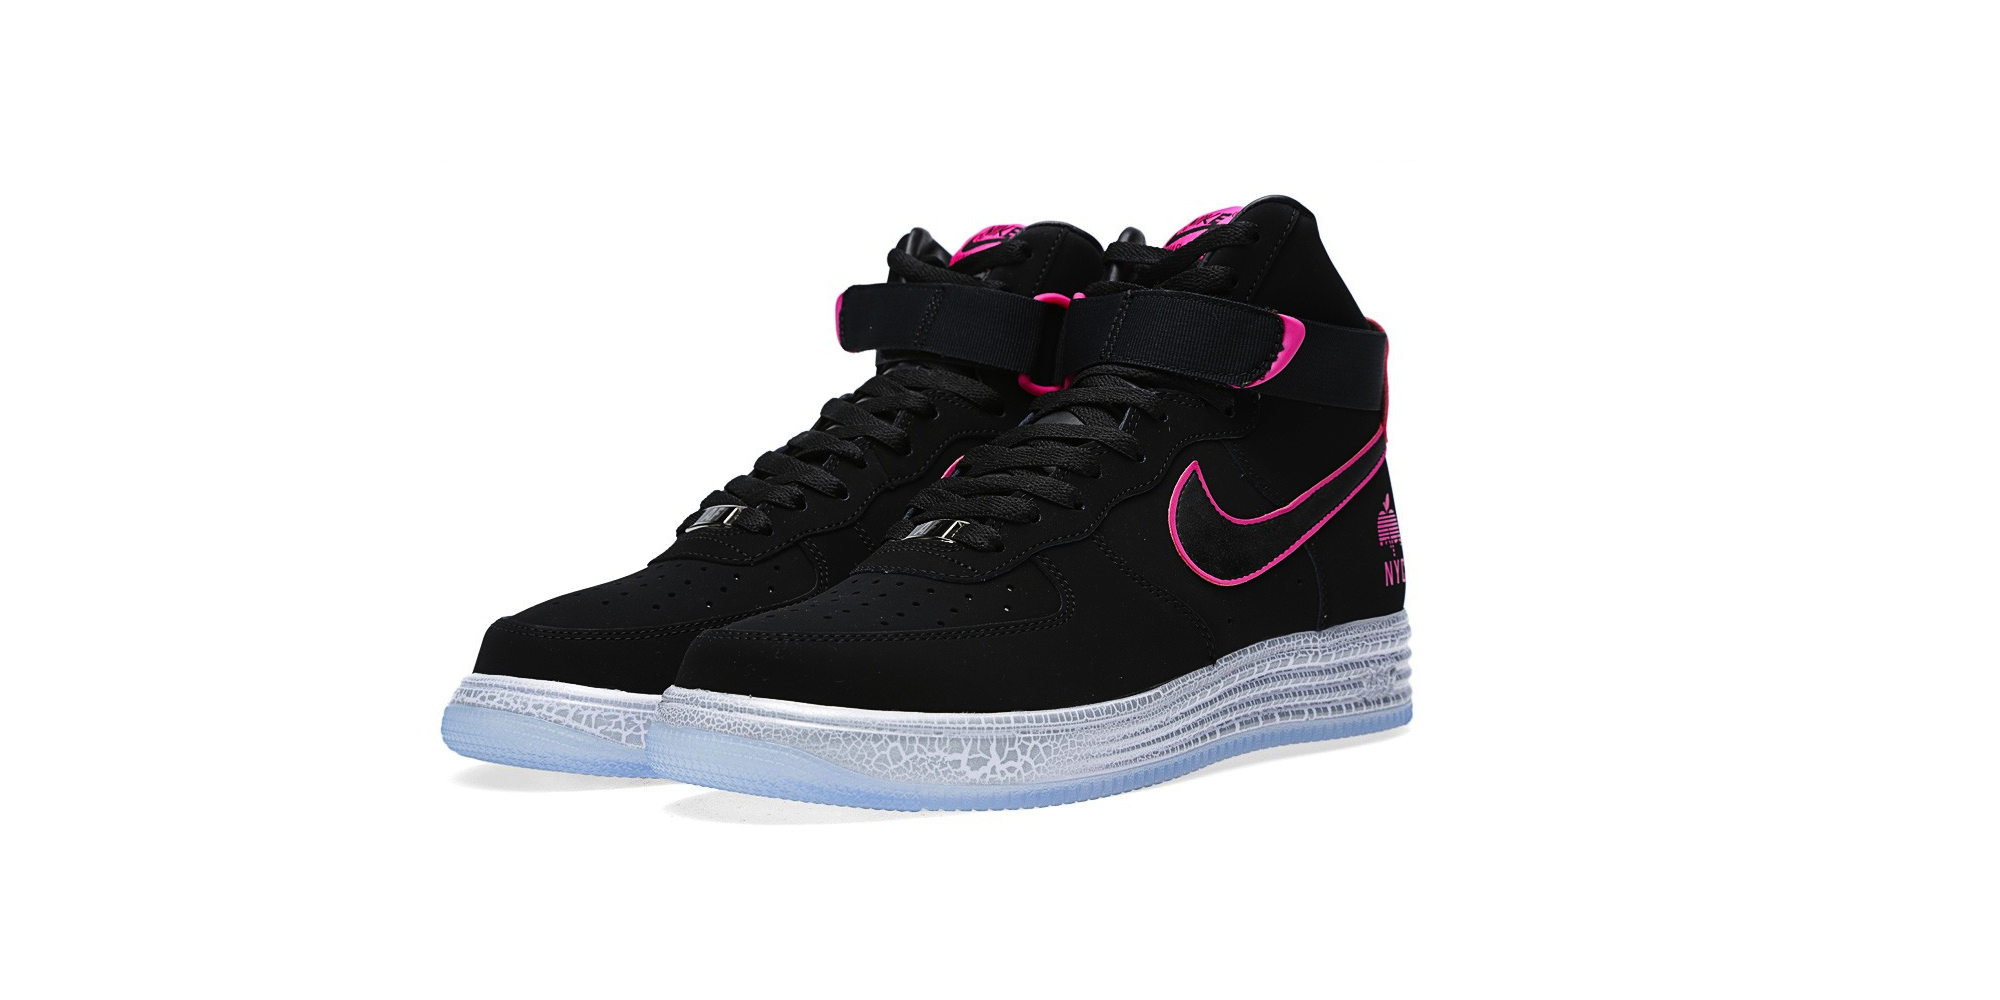 Nike Lunar Force 1 Hyperfuse Hi QS NYC